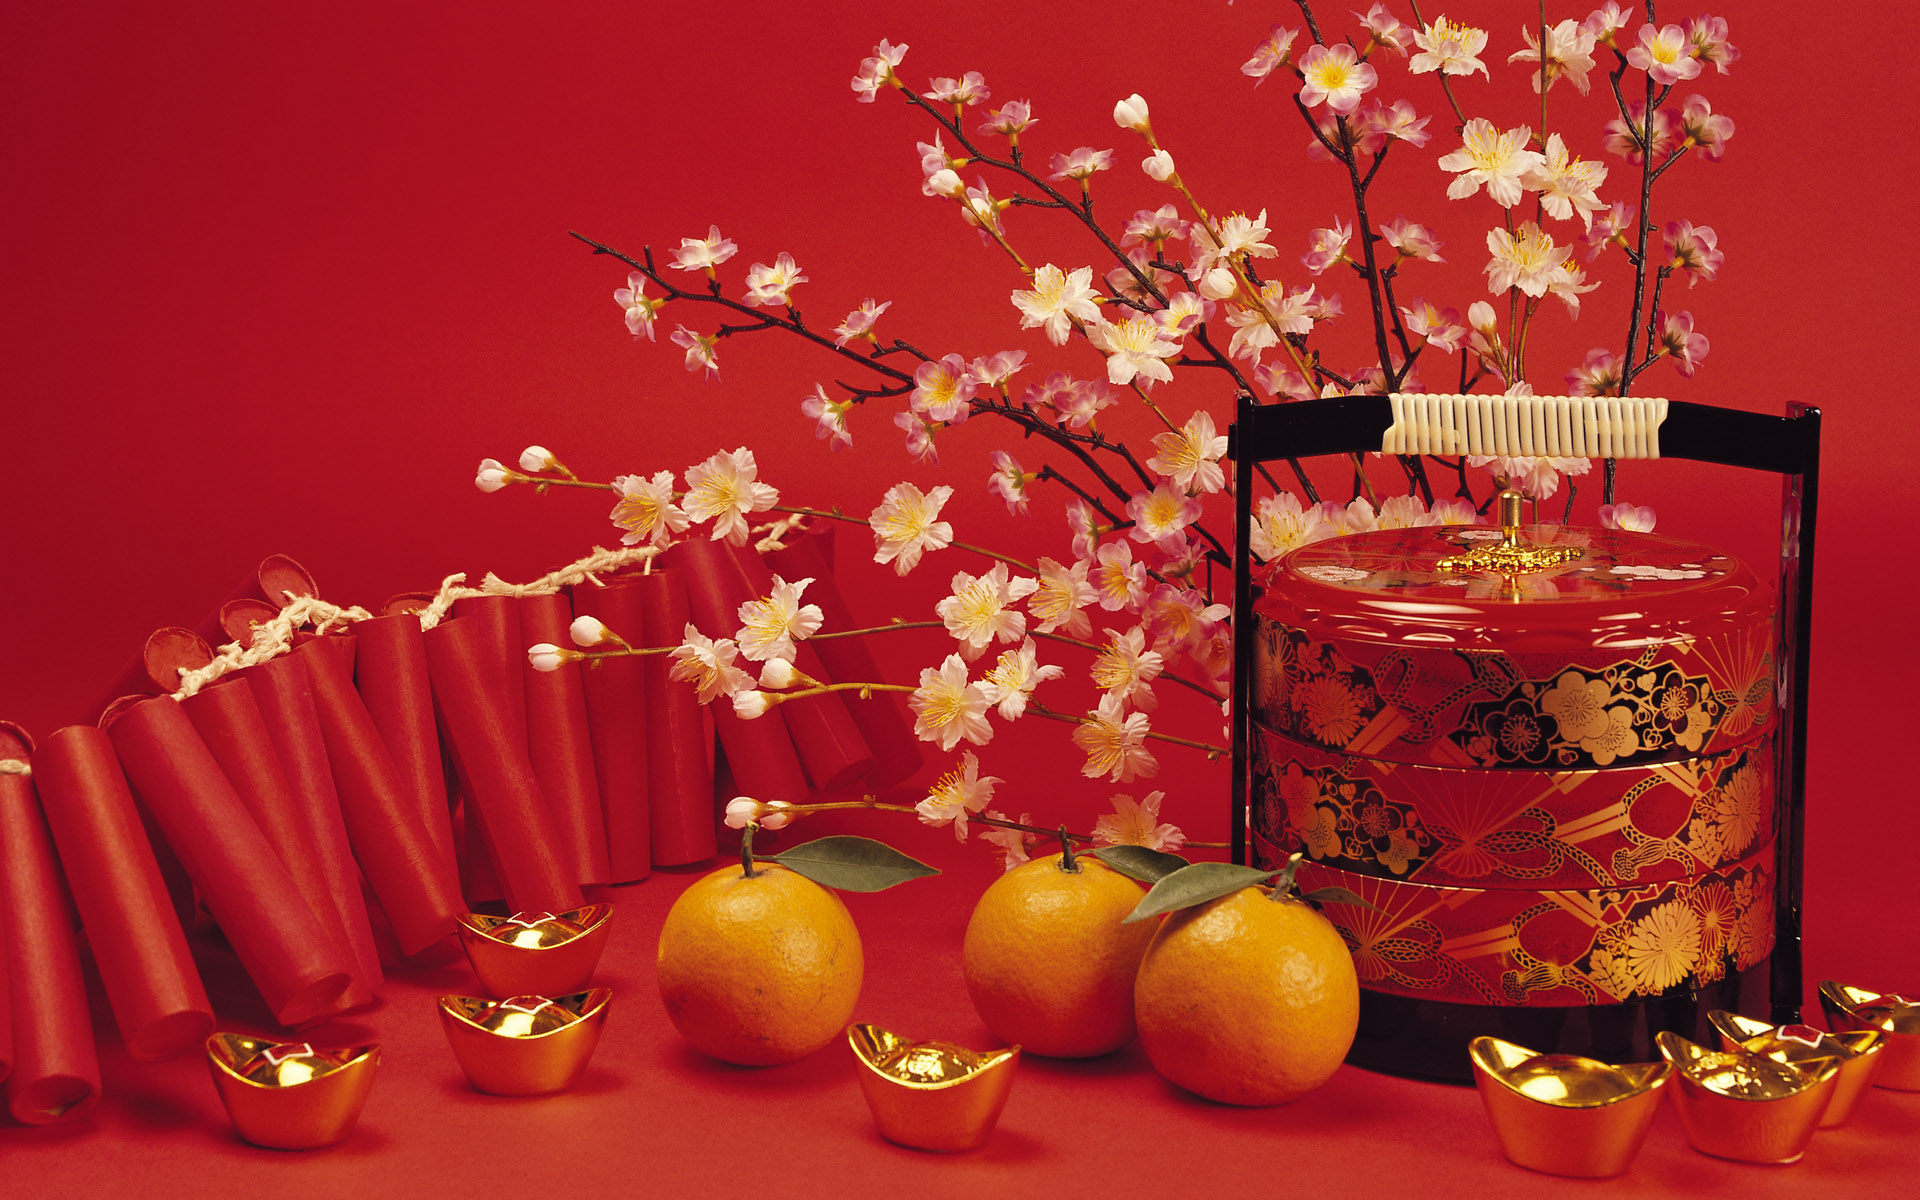 chinese new year wallpaper desktop wallpapers 2015   Grasscloth 1920x1200